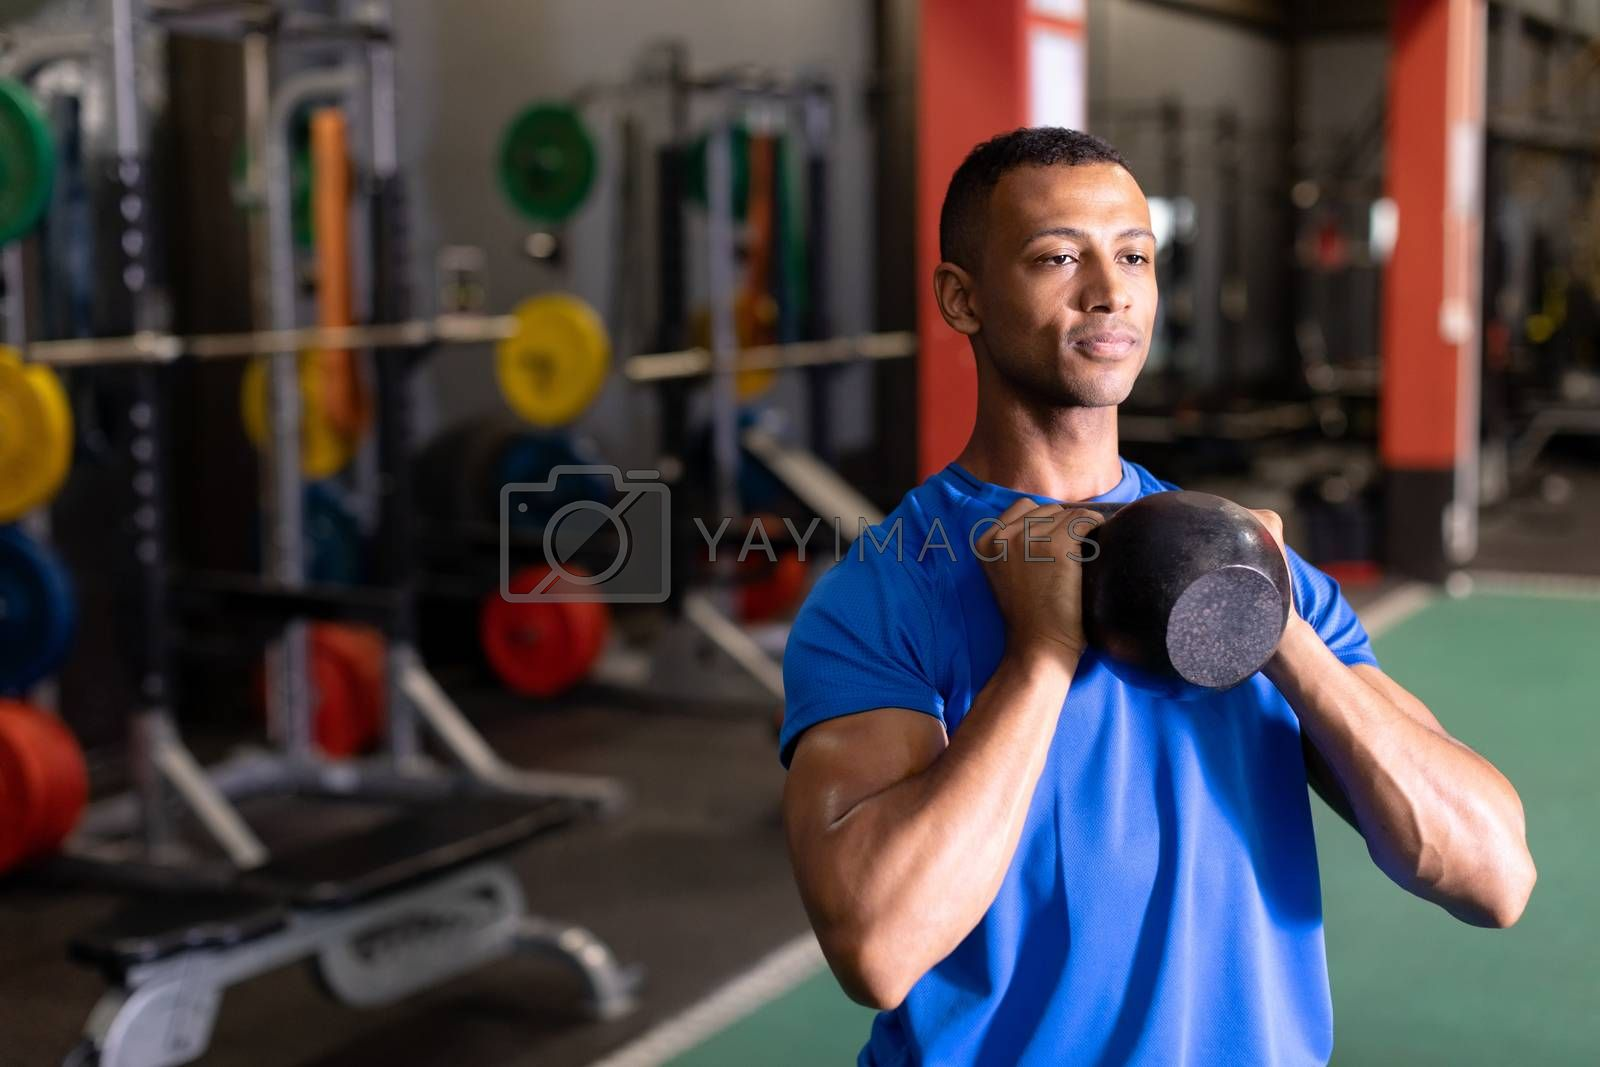 Front view of an African-American man lifting ball weights with both arms inside a room at a sports centre. Bright modern gym with fit healthy people working out and training. Bright modern gym with fit healthy people working out and training